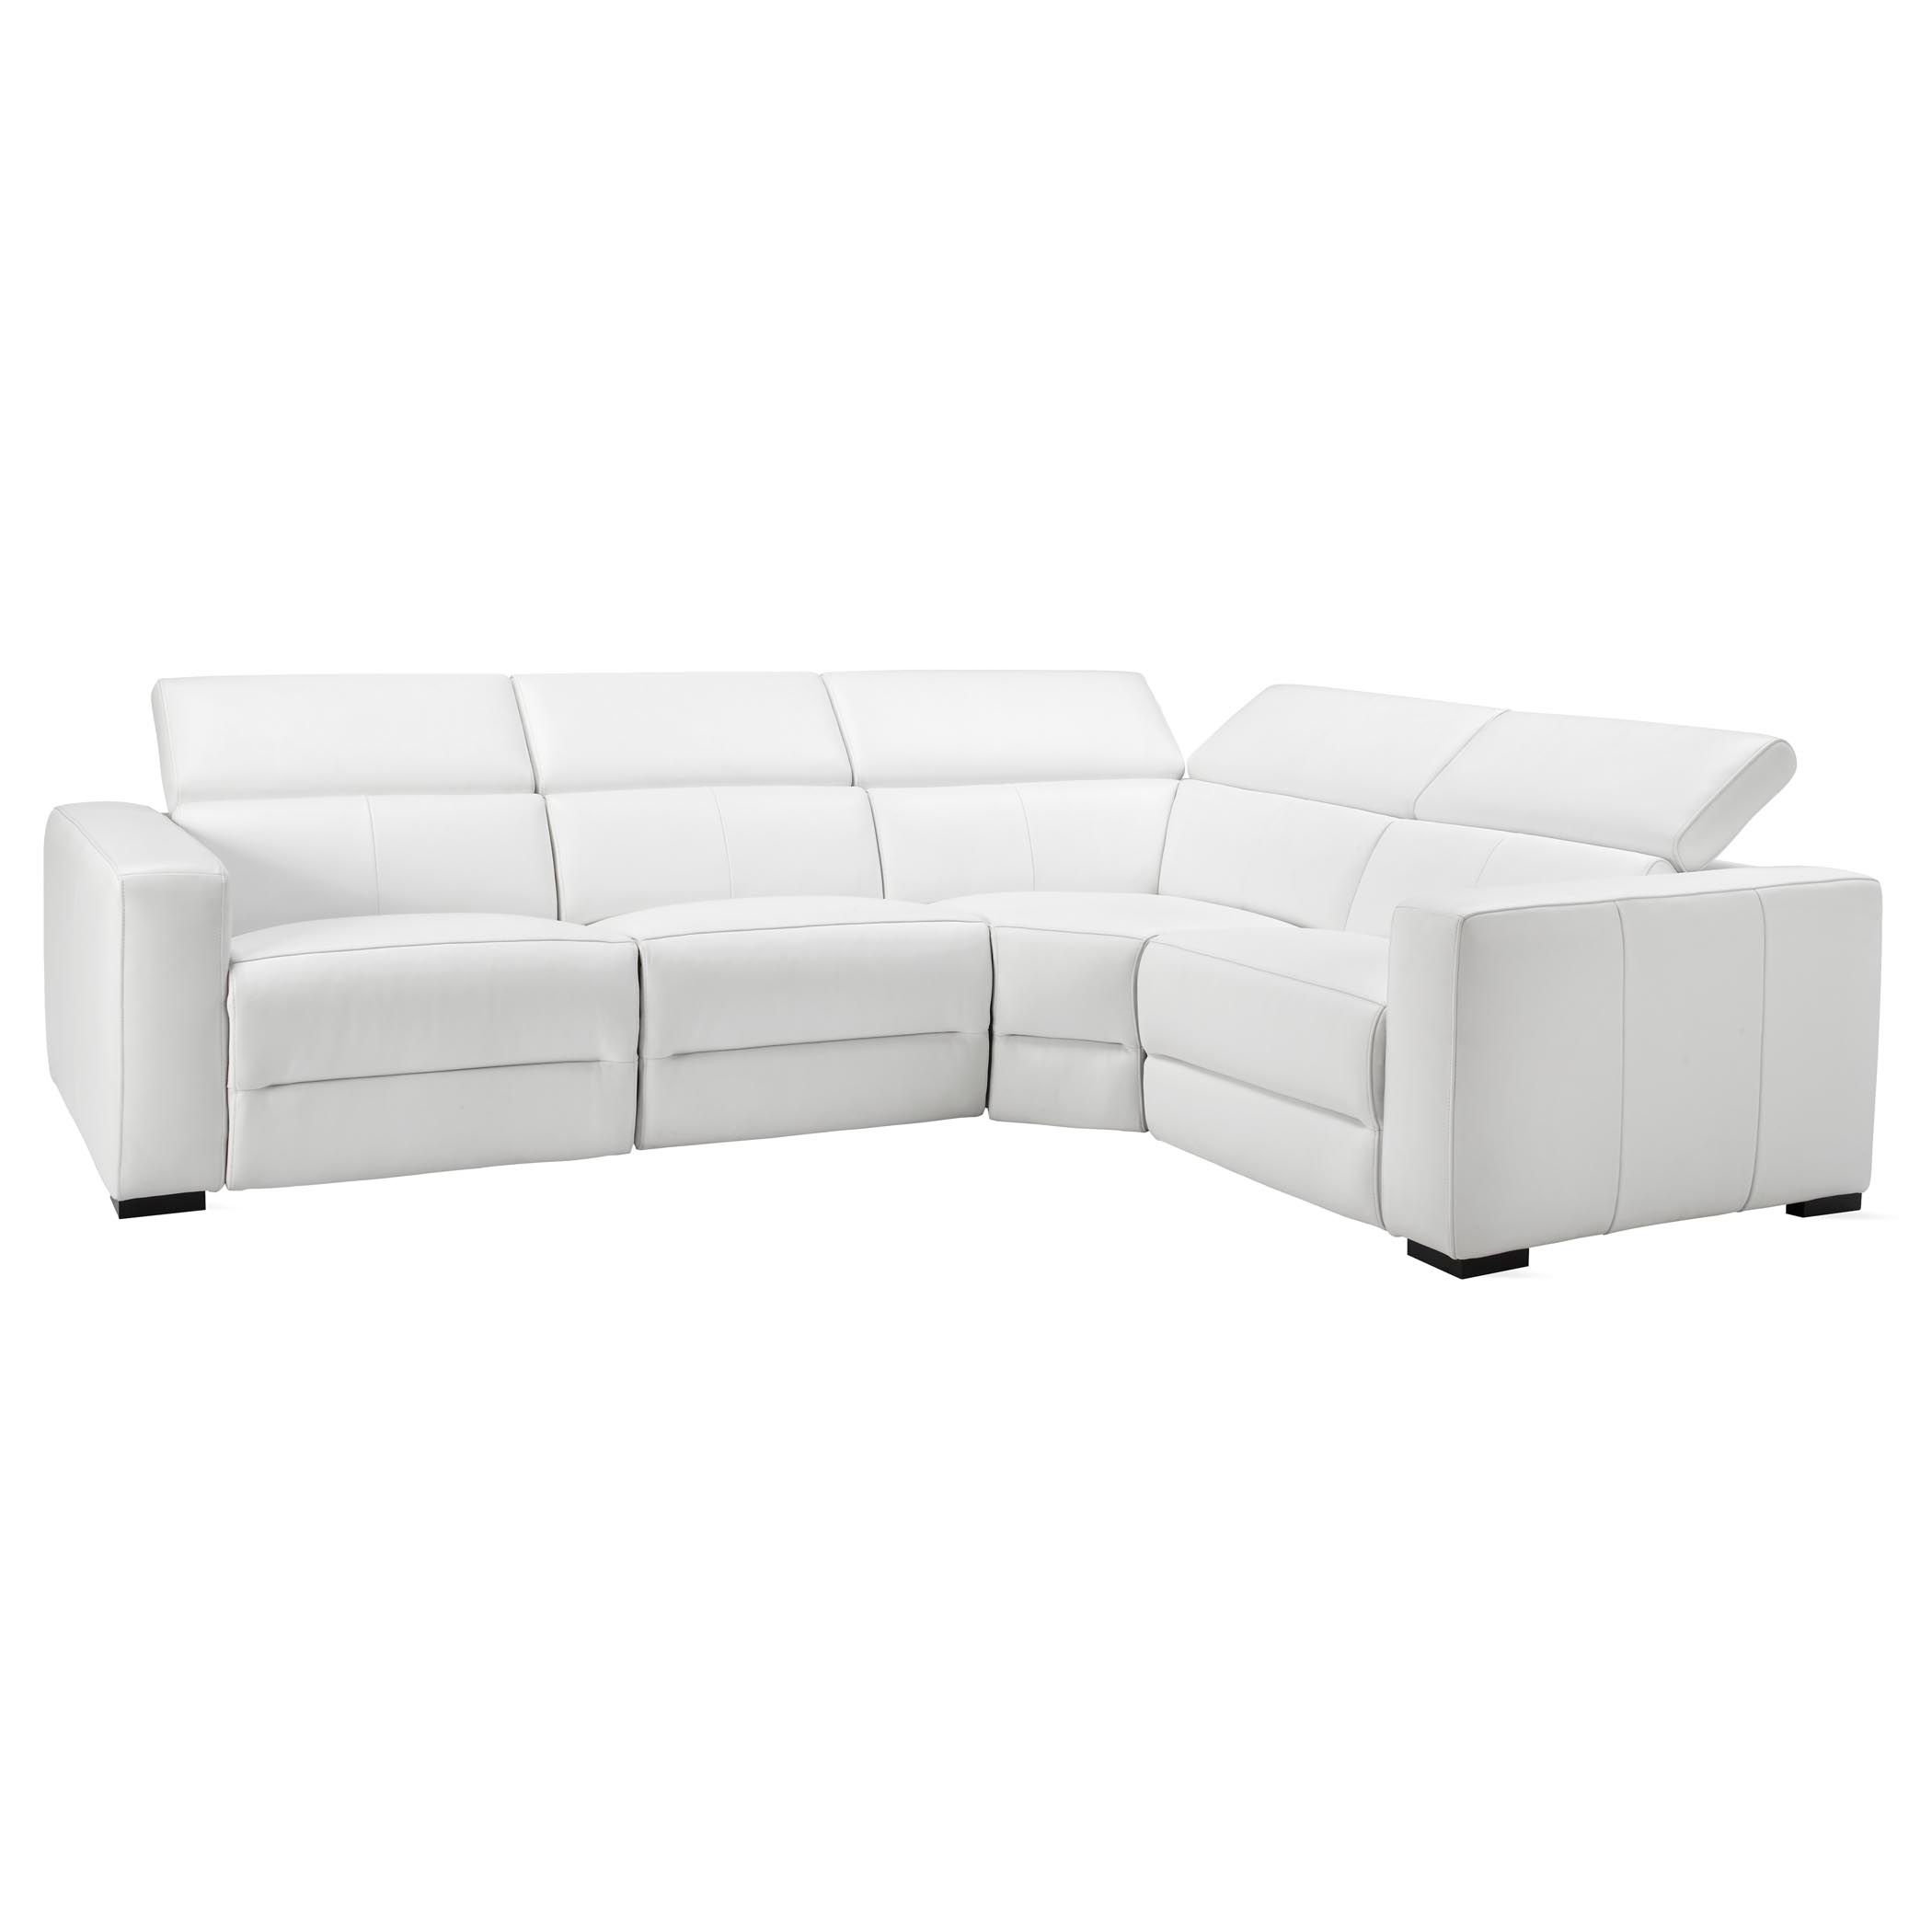 4 pc sectional - right arm facing (shown)